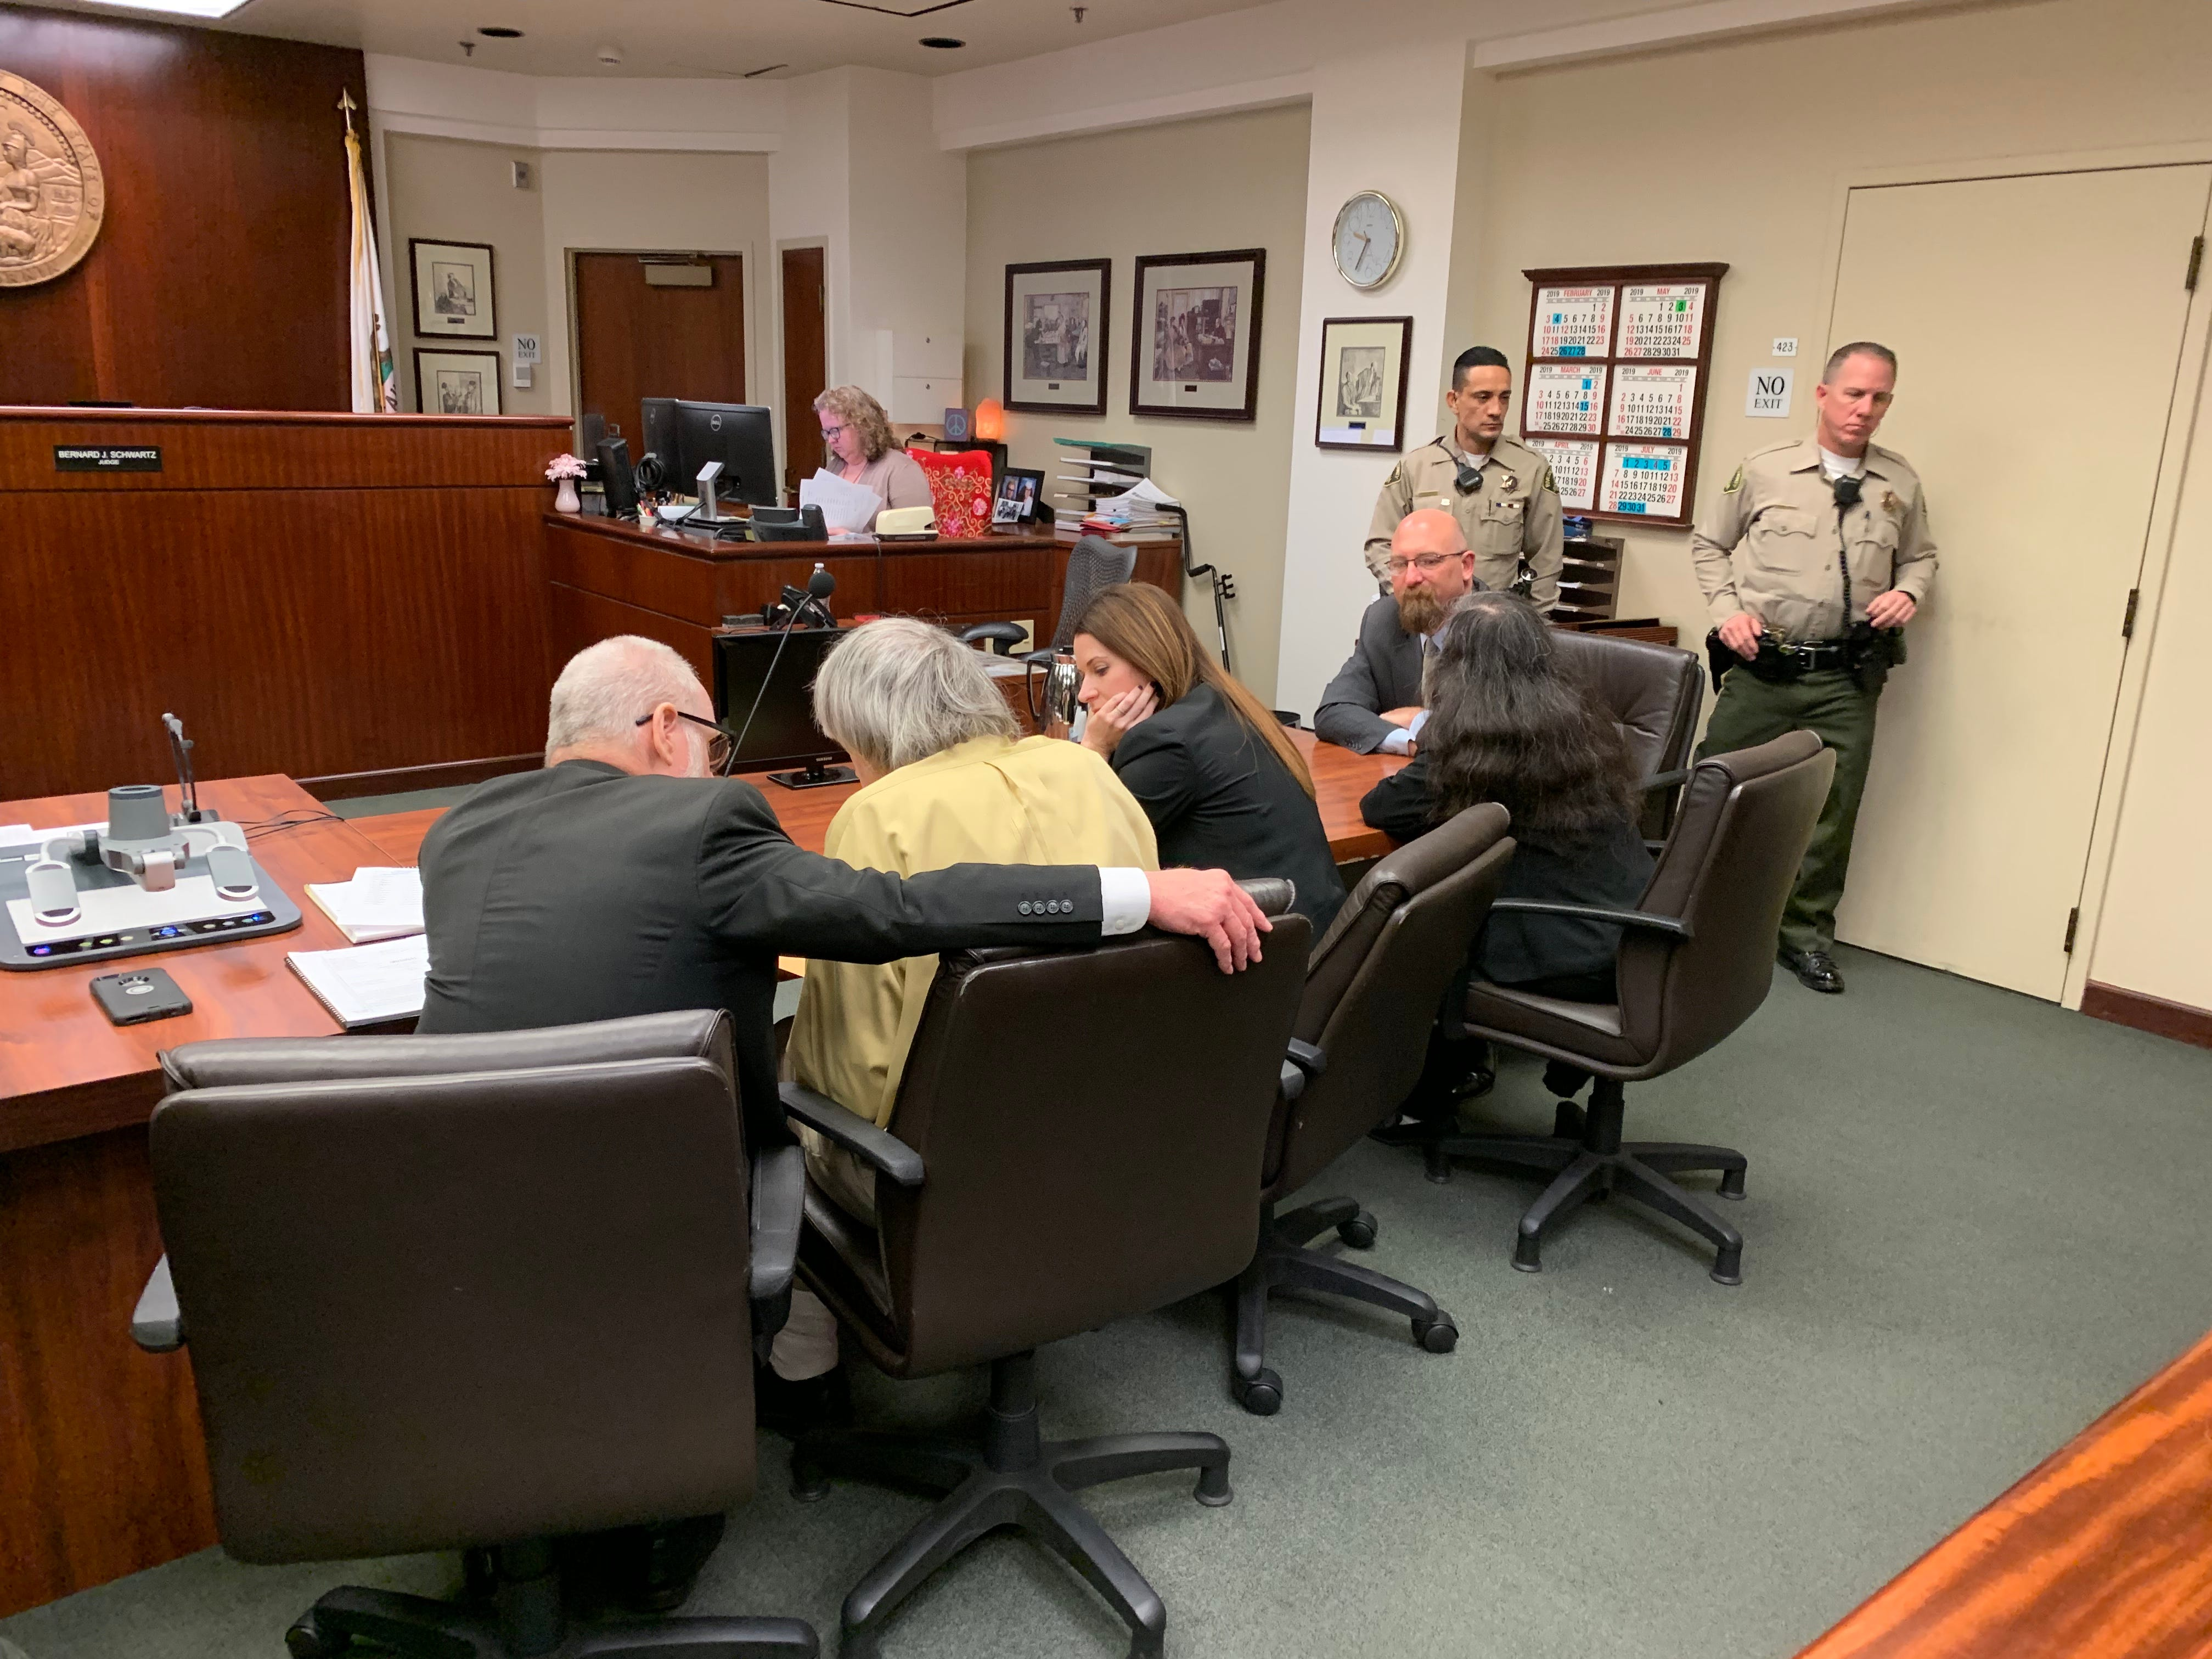 David Turpin, left wearing yellow shirt, confers with counsel after pleading guilty on several counts of torture and abuse on Feb. 22, 2019 in Riverside.